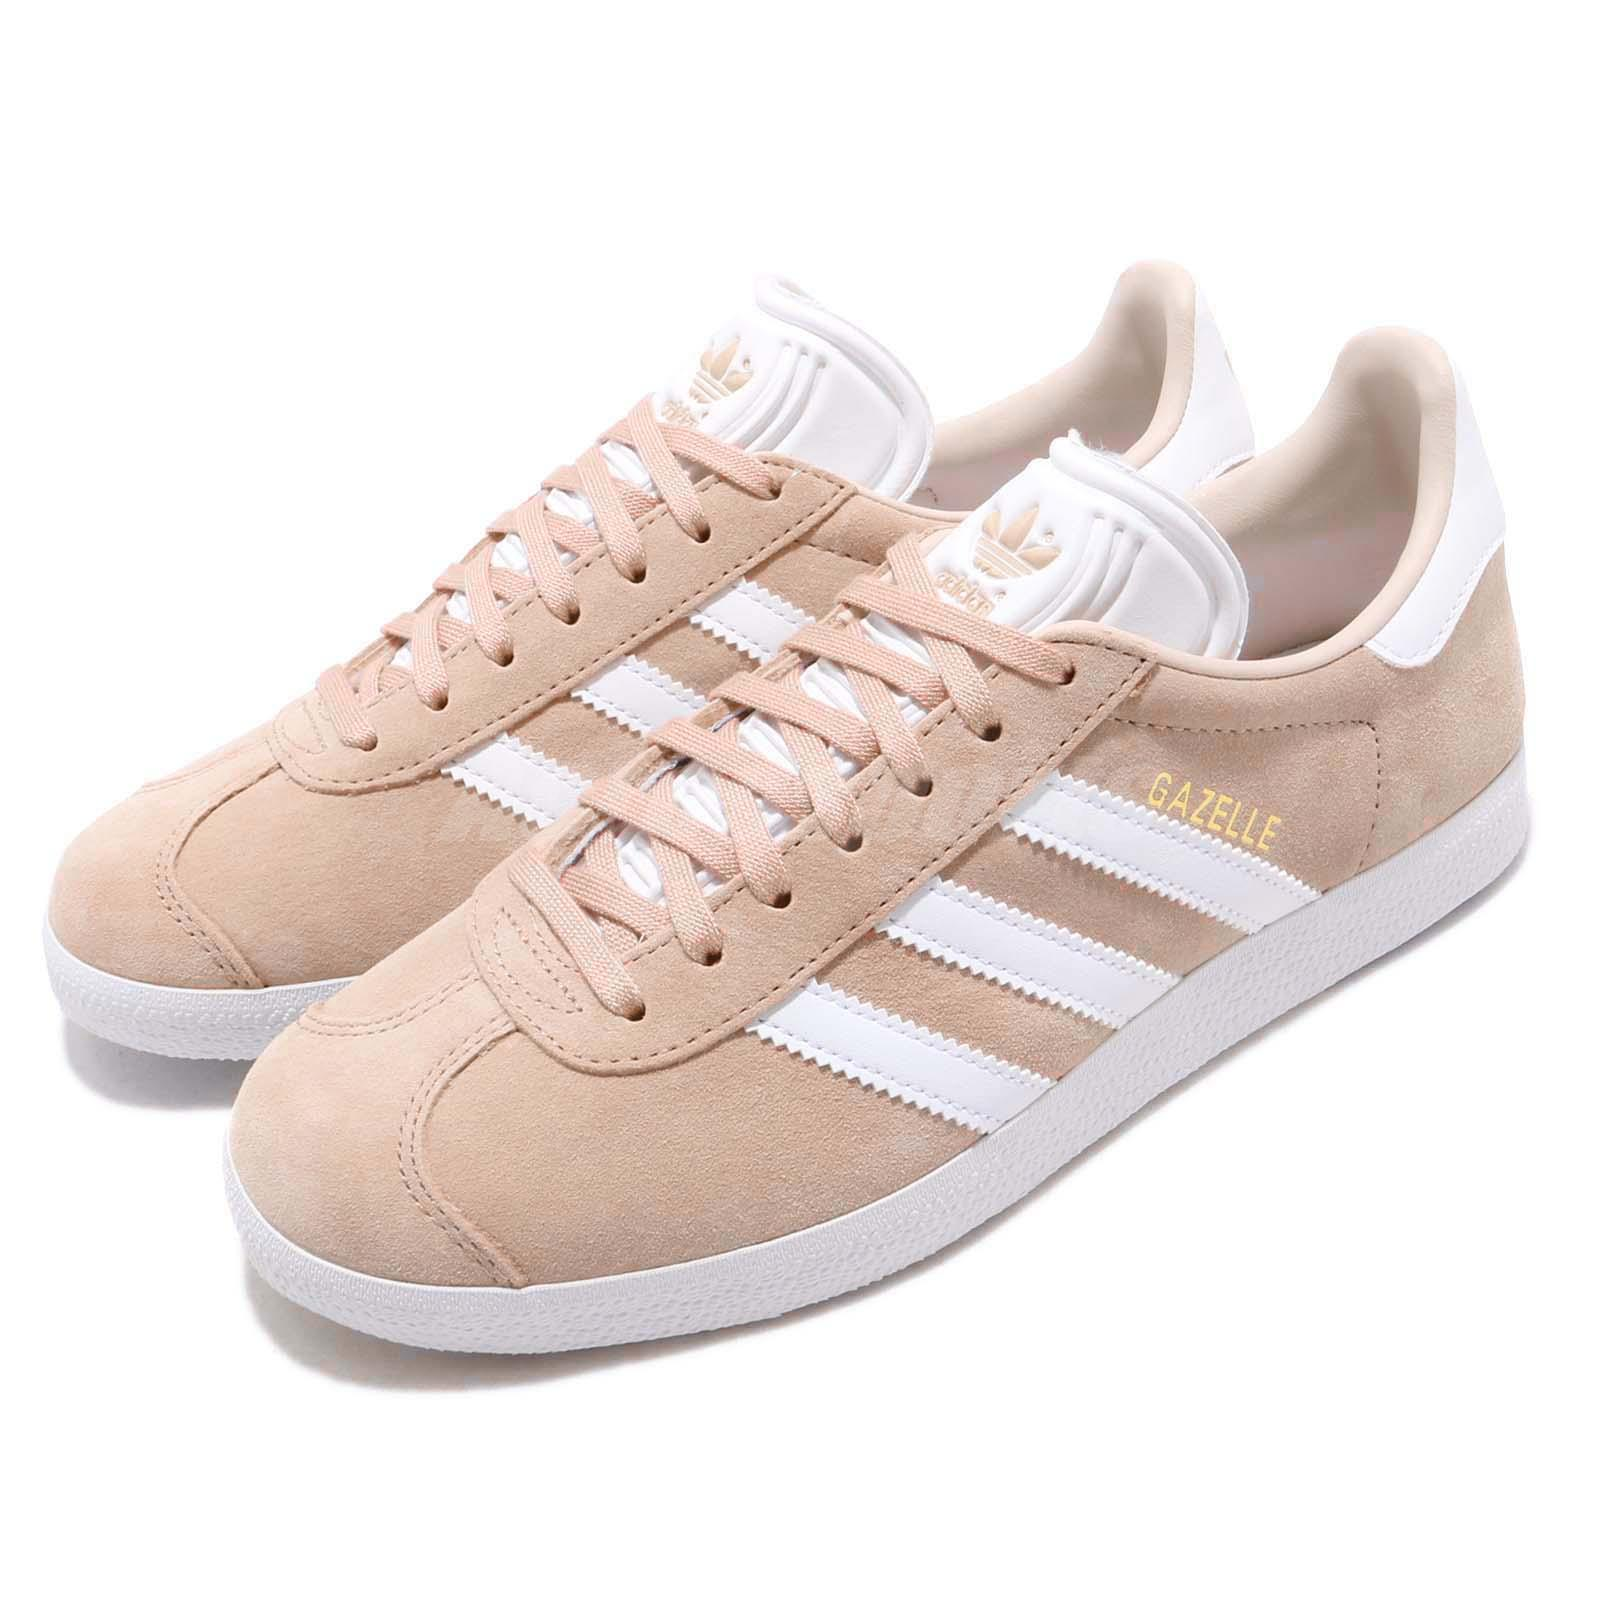 f21668bf4174 Details about adidas Originals Gazelle W Ash Pearl White Women Casual Shoes  Sneakers B41660